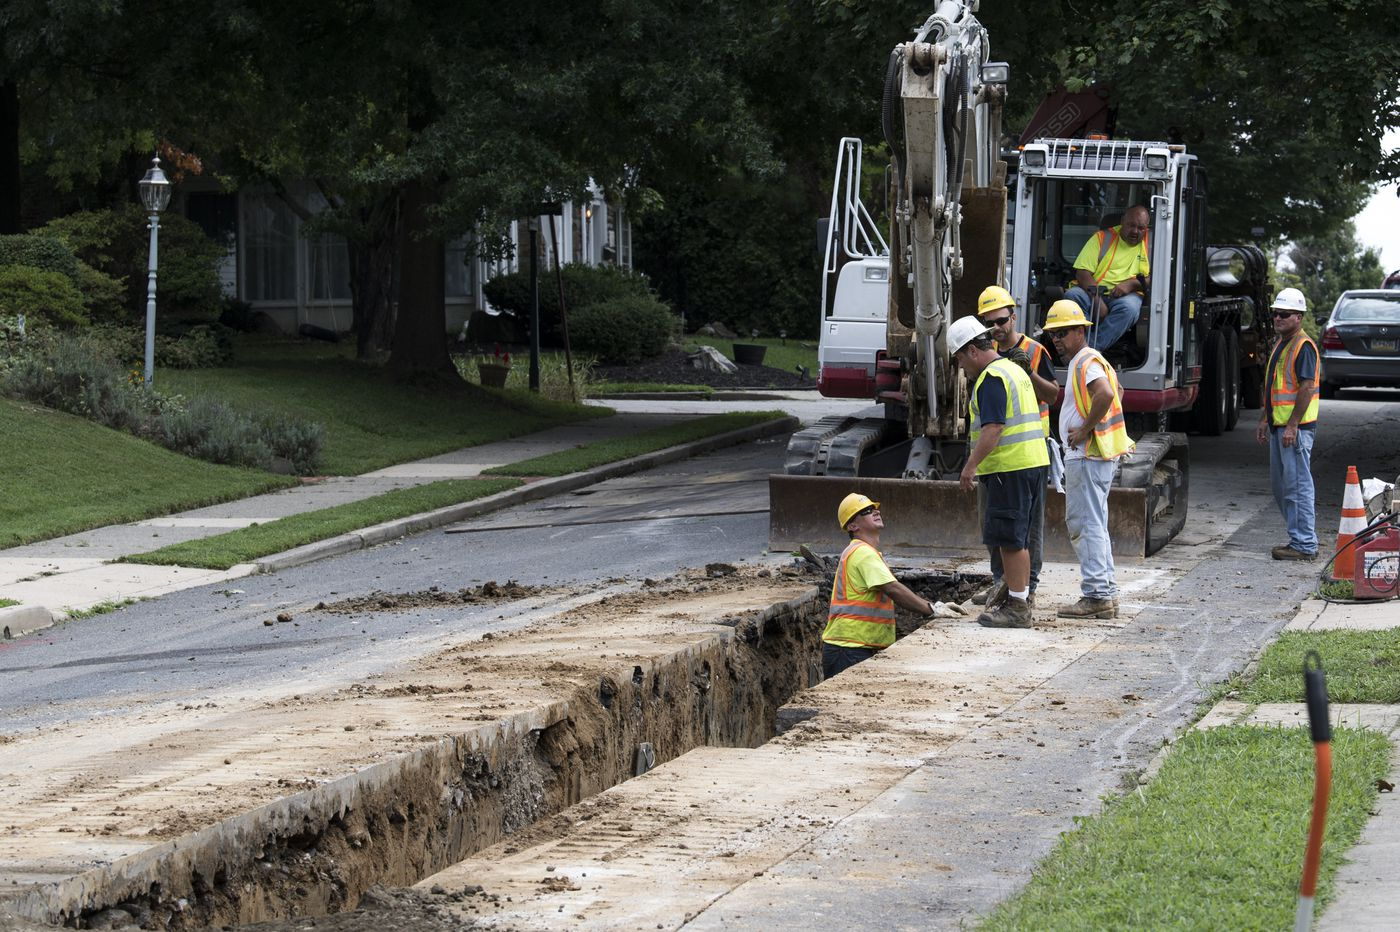 Aqua strikes again, acquiring another Montco sewer system